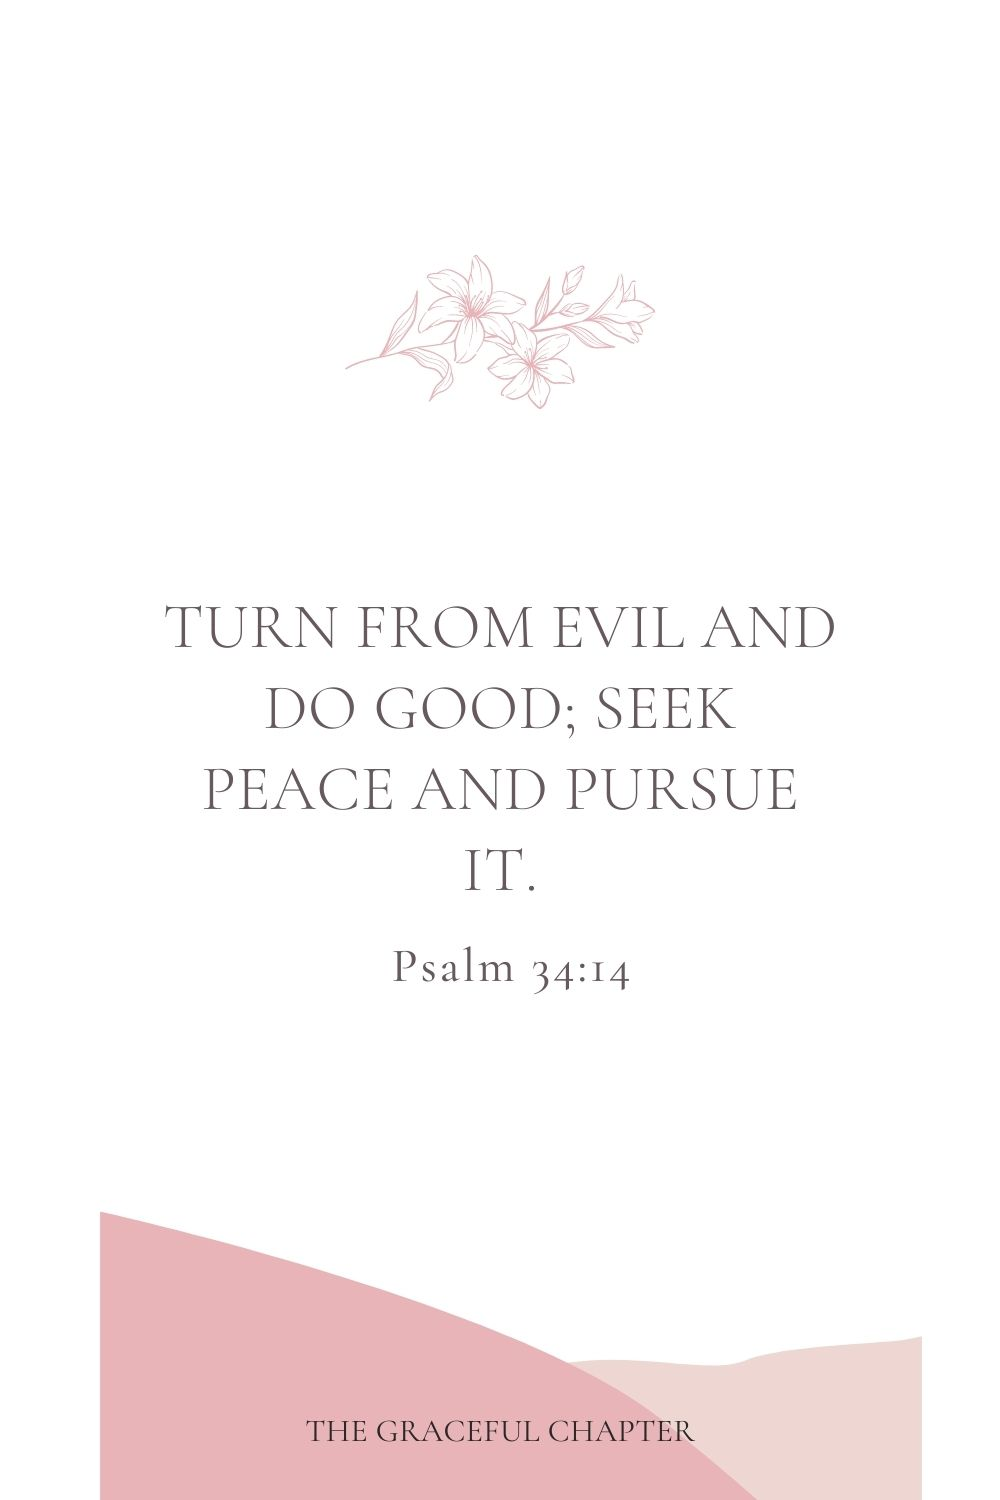 Turn from evil and do good; seek peace and pursue it. Psalm 34:14